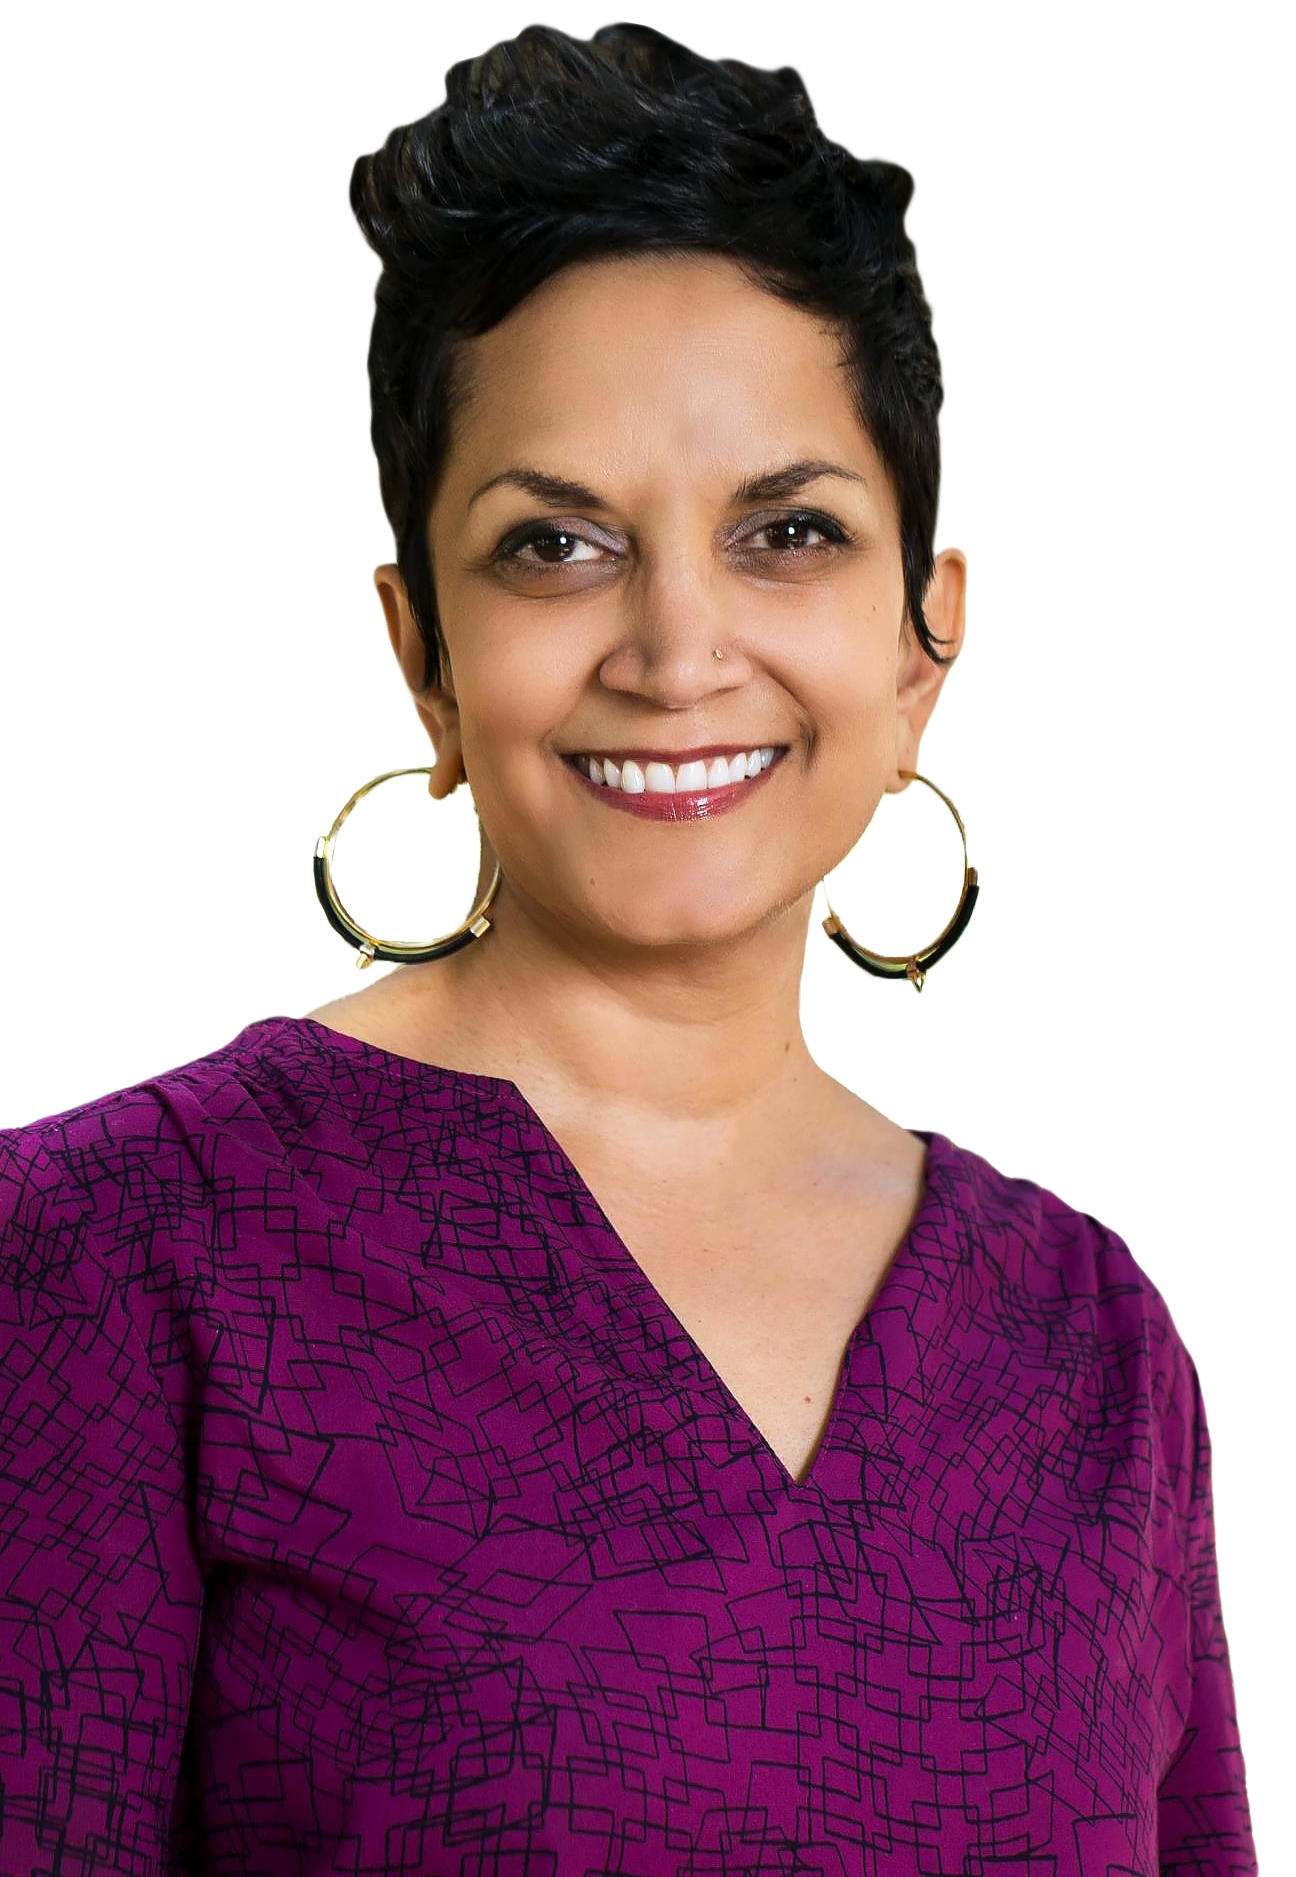 Author and educator Leigh Patel contemplates decolonizing higher ed.